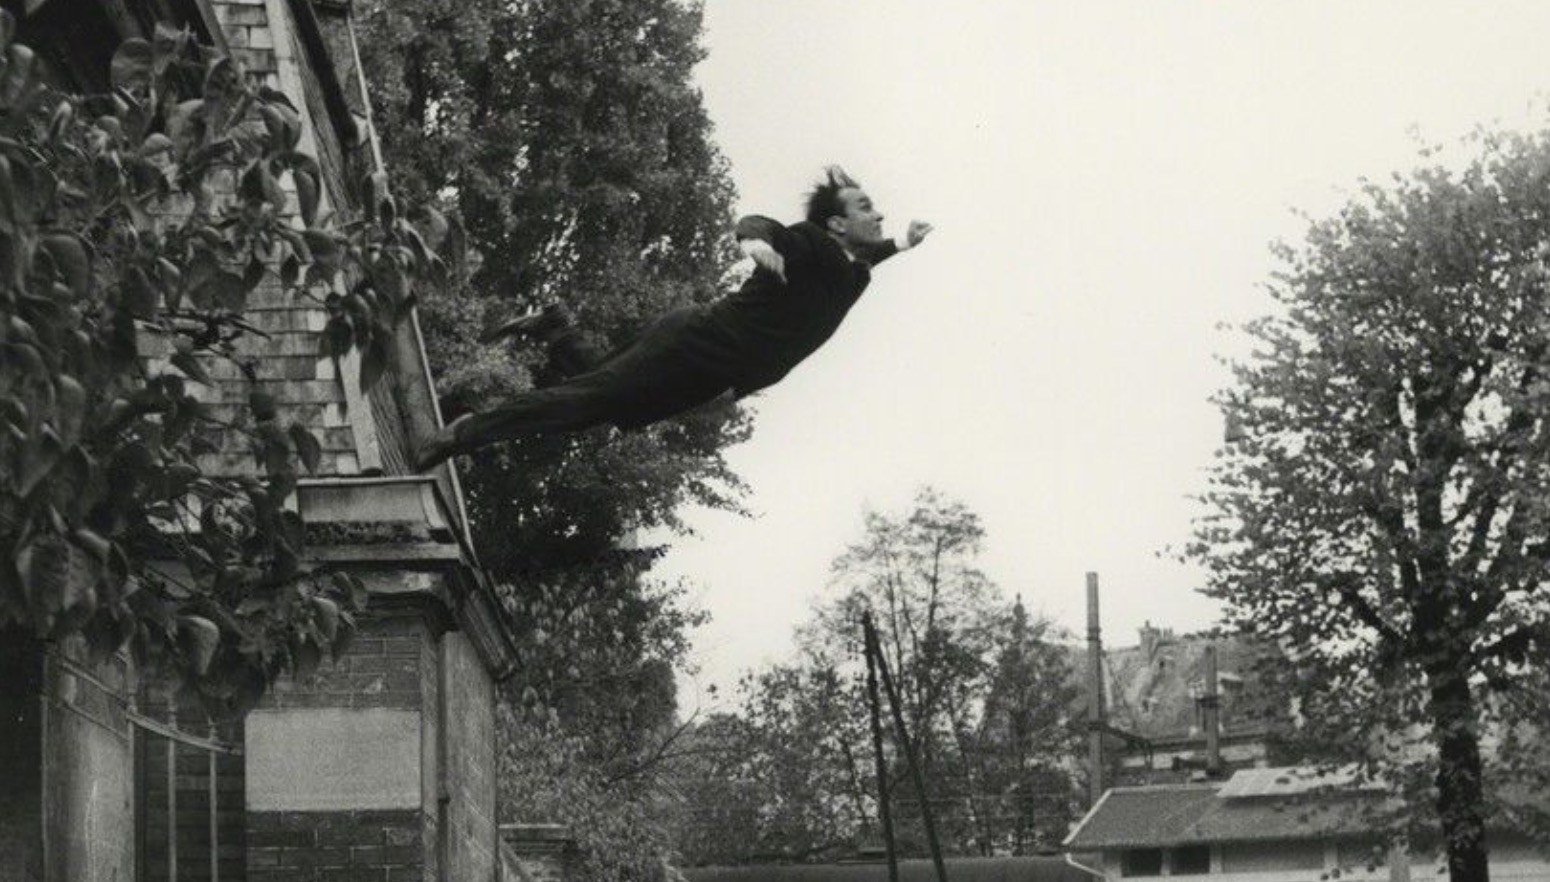 How Yves Klein Tricked the World — And Changed Photography — With This Iconic Photograph